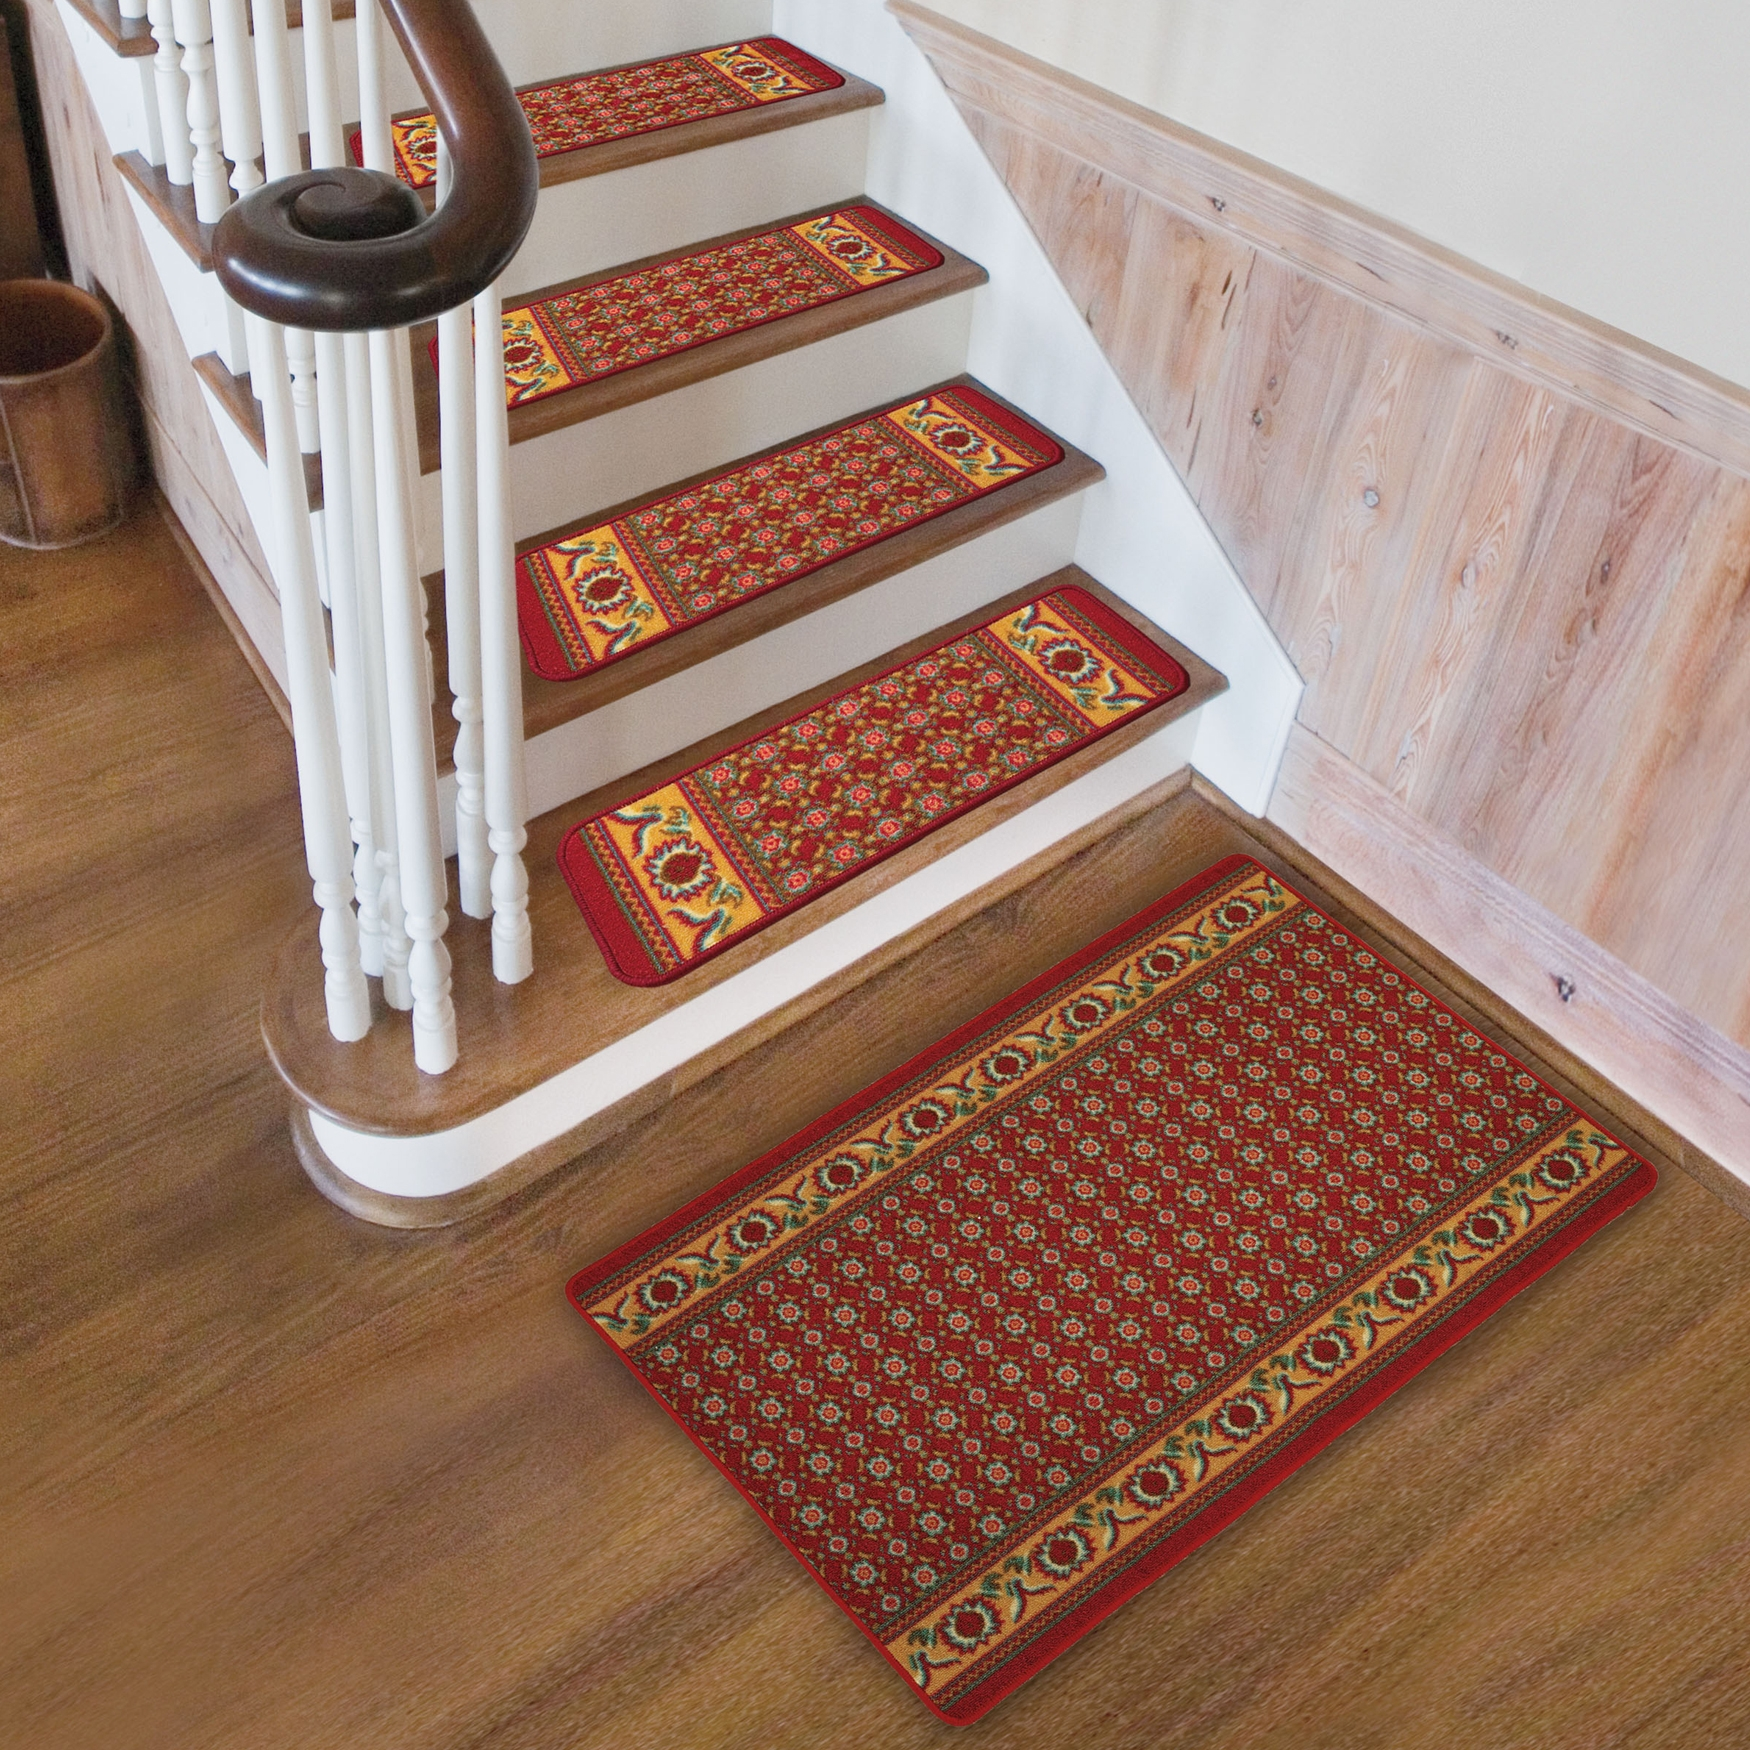 Entry Mudroom Wondrous Carpet Stair Treads With Classic Colors With Regard To Stair Tread Rugs Indoor (#4 of 20)